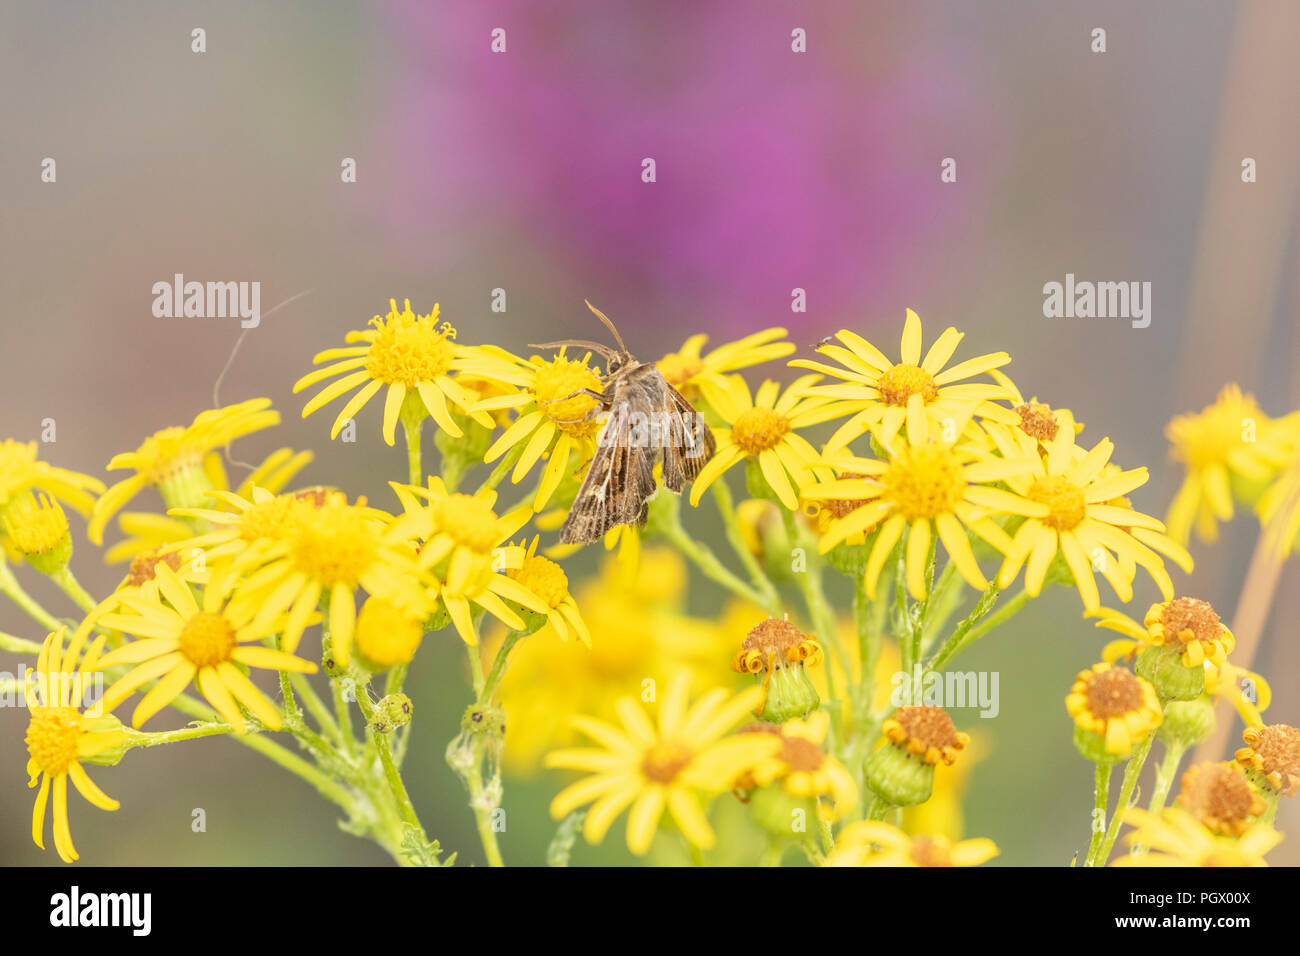 An antler moth (Cerapteryx graminis) on the yellow flowers of ragwort. - Stock Image